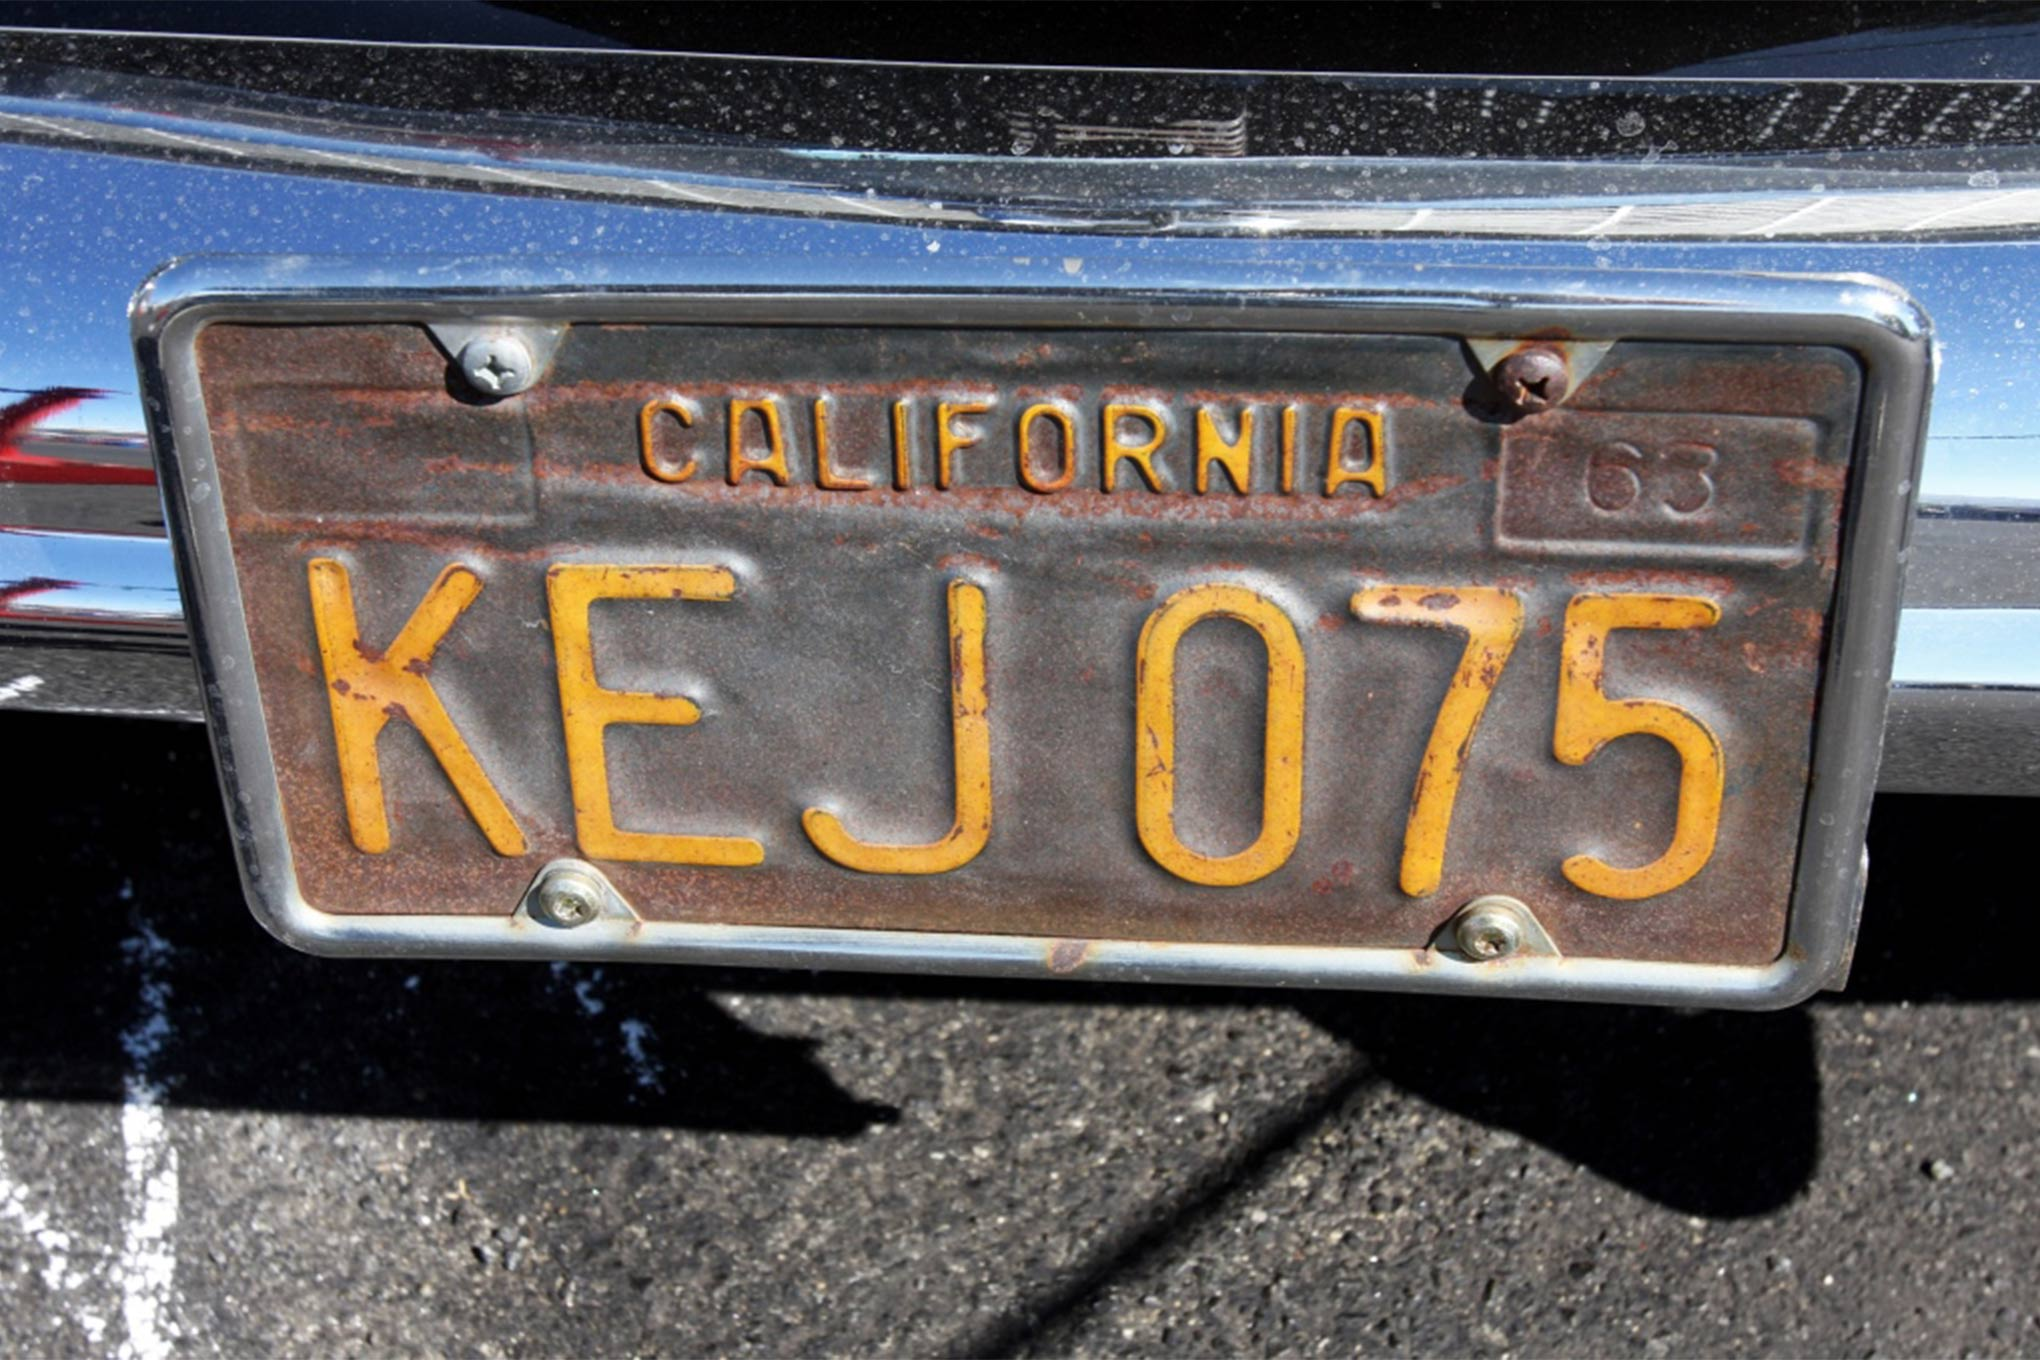 If this hot rodder wants a fresh replica set of those time-worn '60s California tags, the Department of Motor Vehicles can provide them.